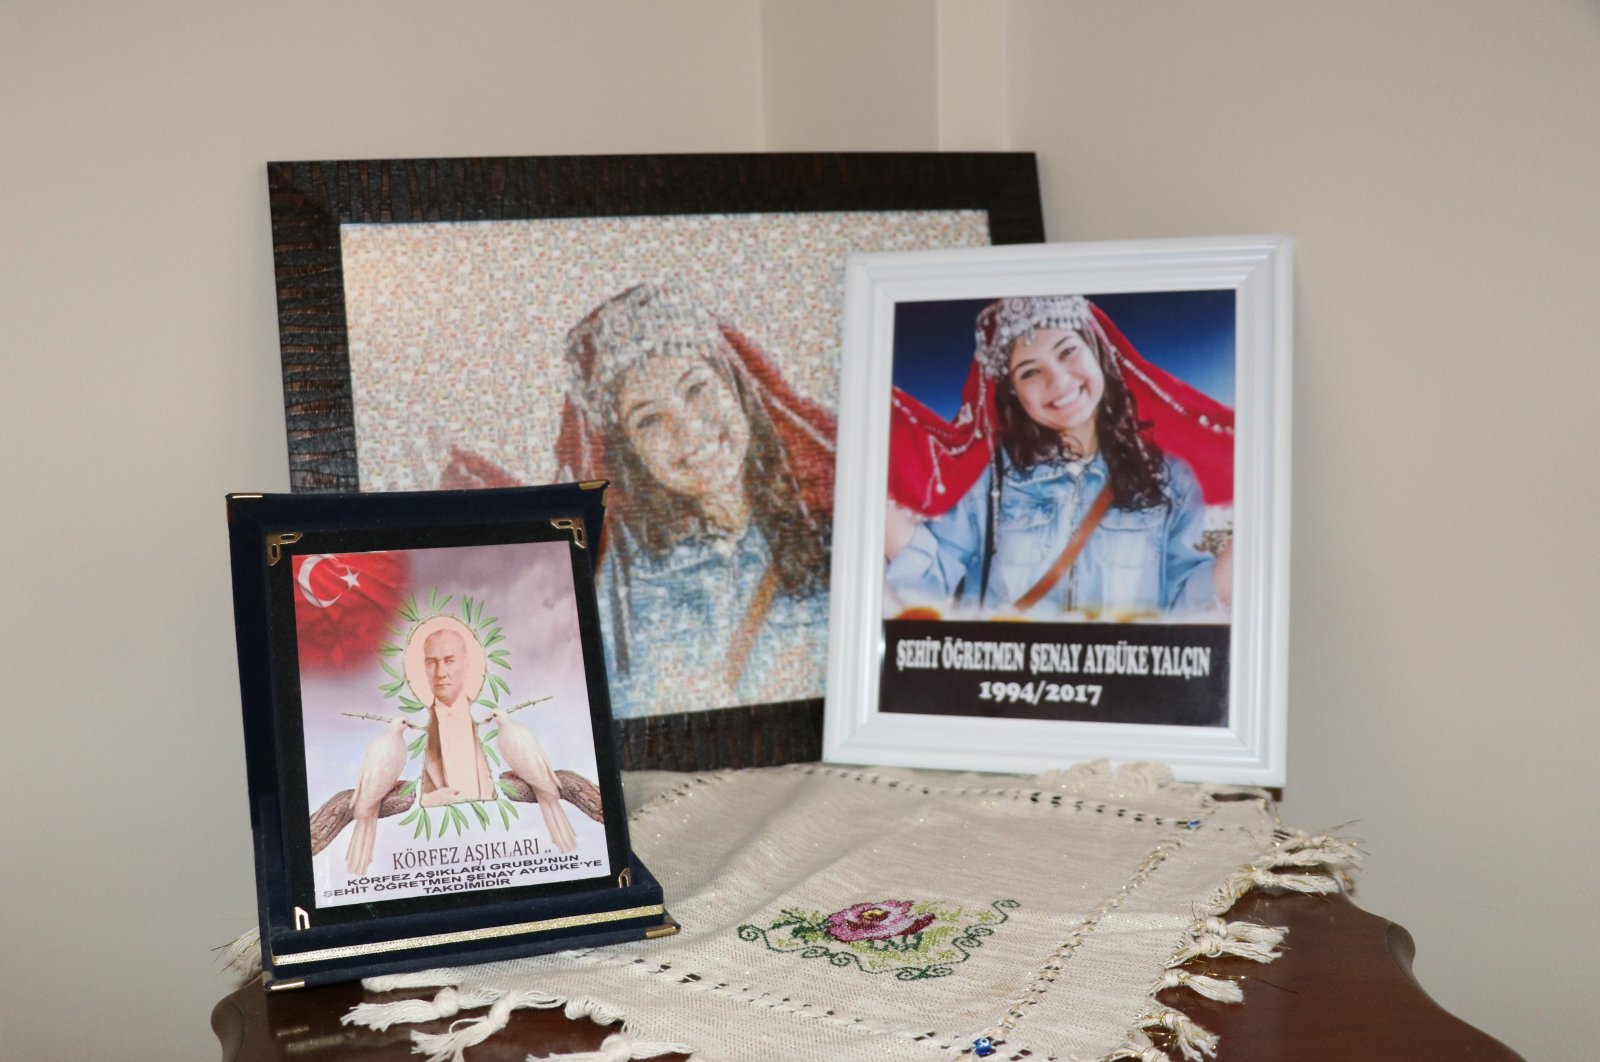 The birthday of 22-year-old music teacher Şenay Aybüke Yalçın, who was killed in a PKK bomb attack in 2017, is remembered by her family in Karabük, Sept.4, 2020. (AA Photo)